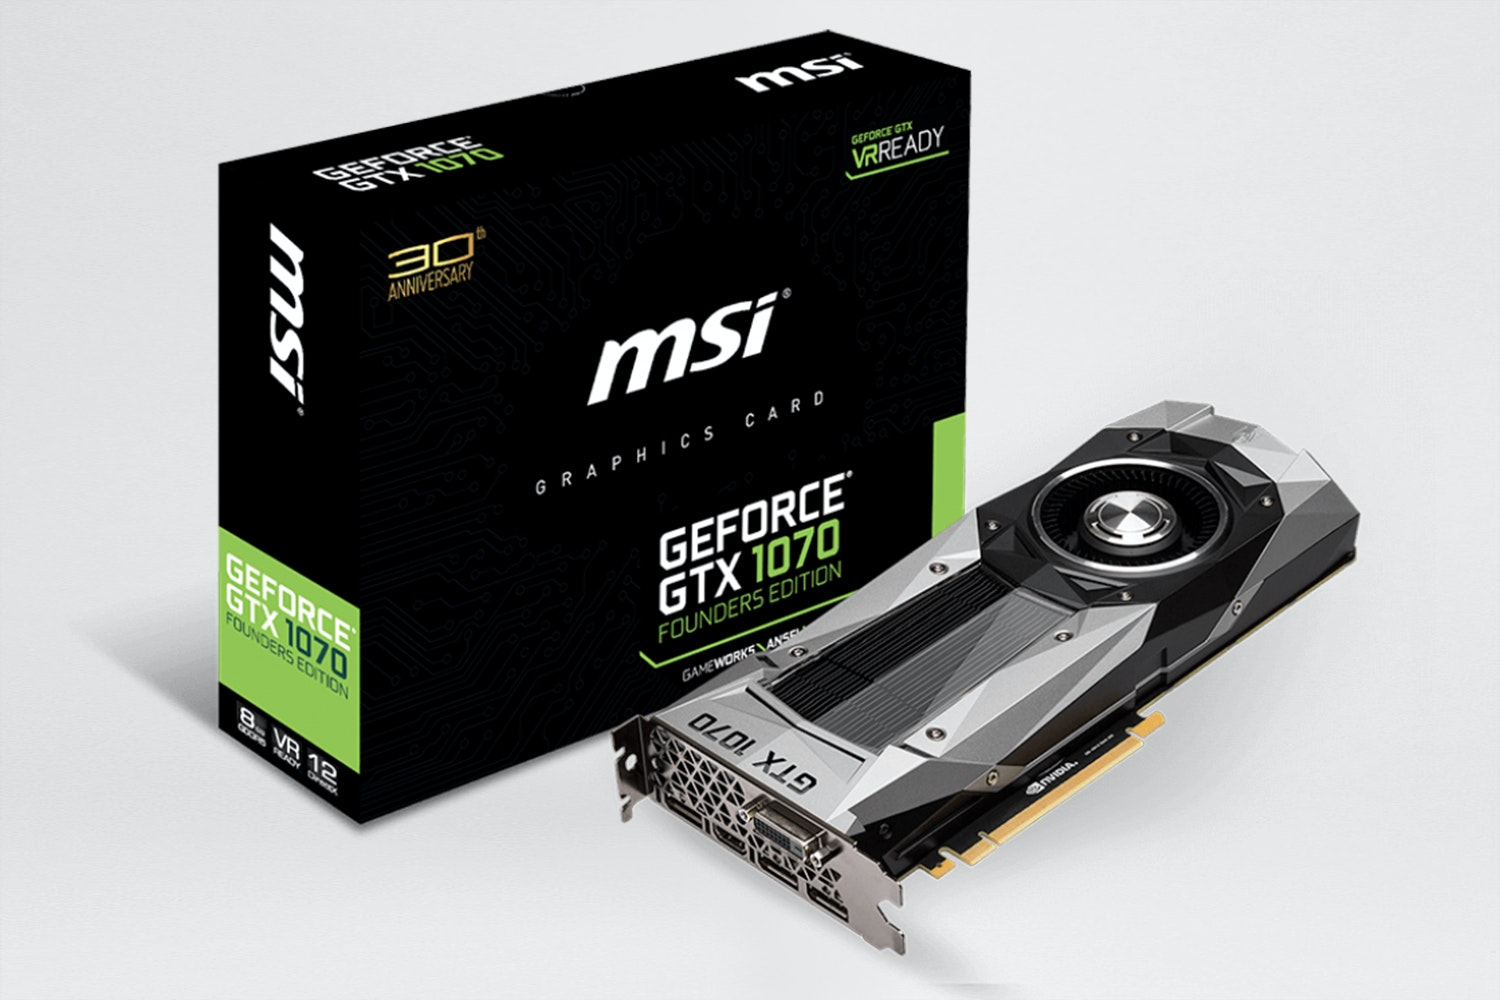 MSI GTX 1070 Founders Edition - Pre Order